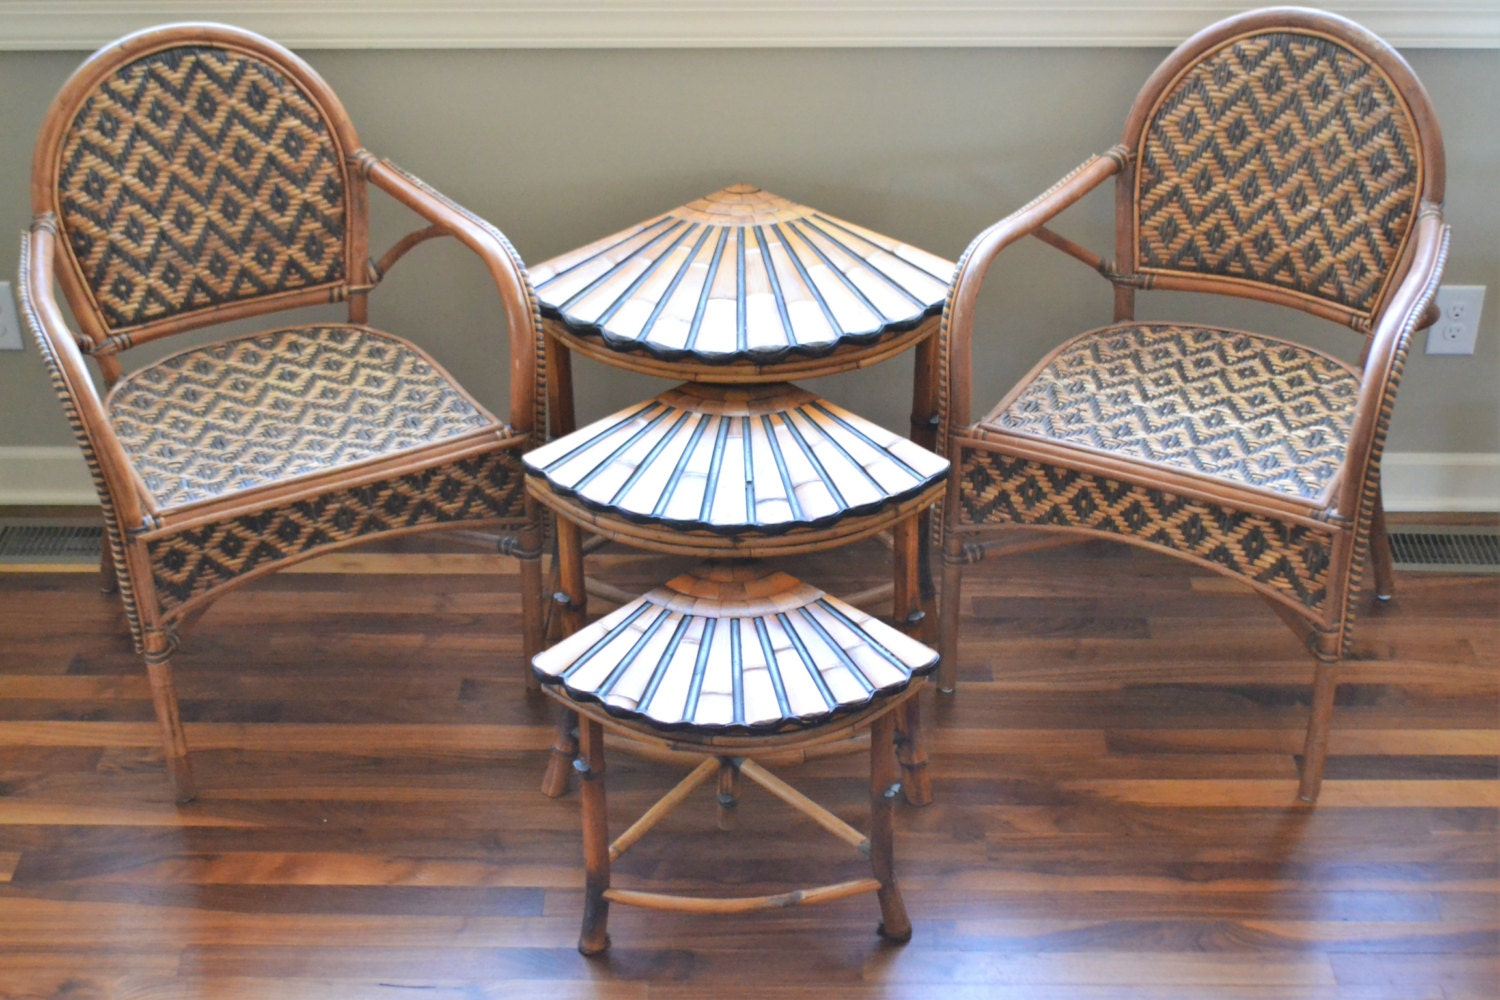 Vintage Bamboo Rattan Side Tables Set Of 3 Bamboo End Tables